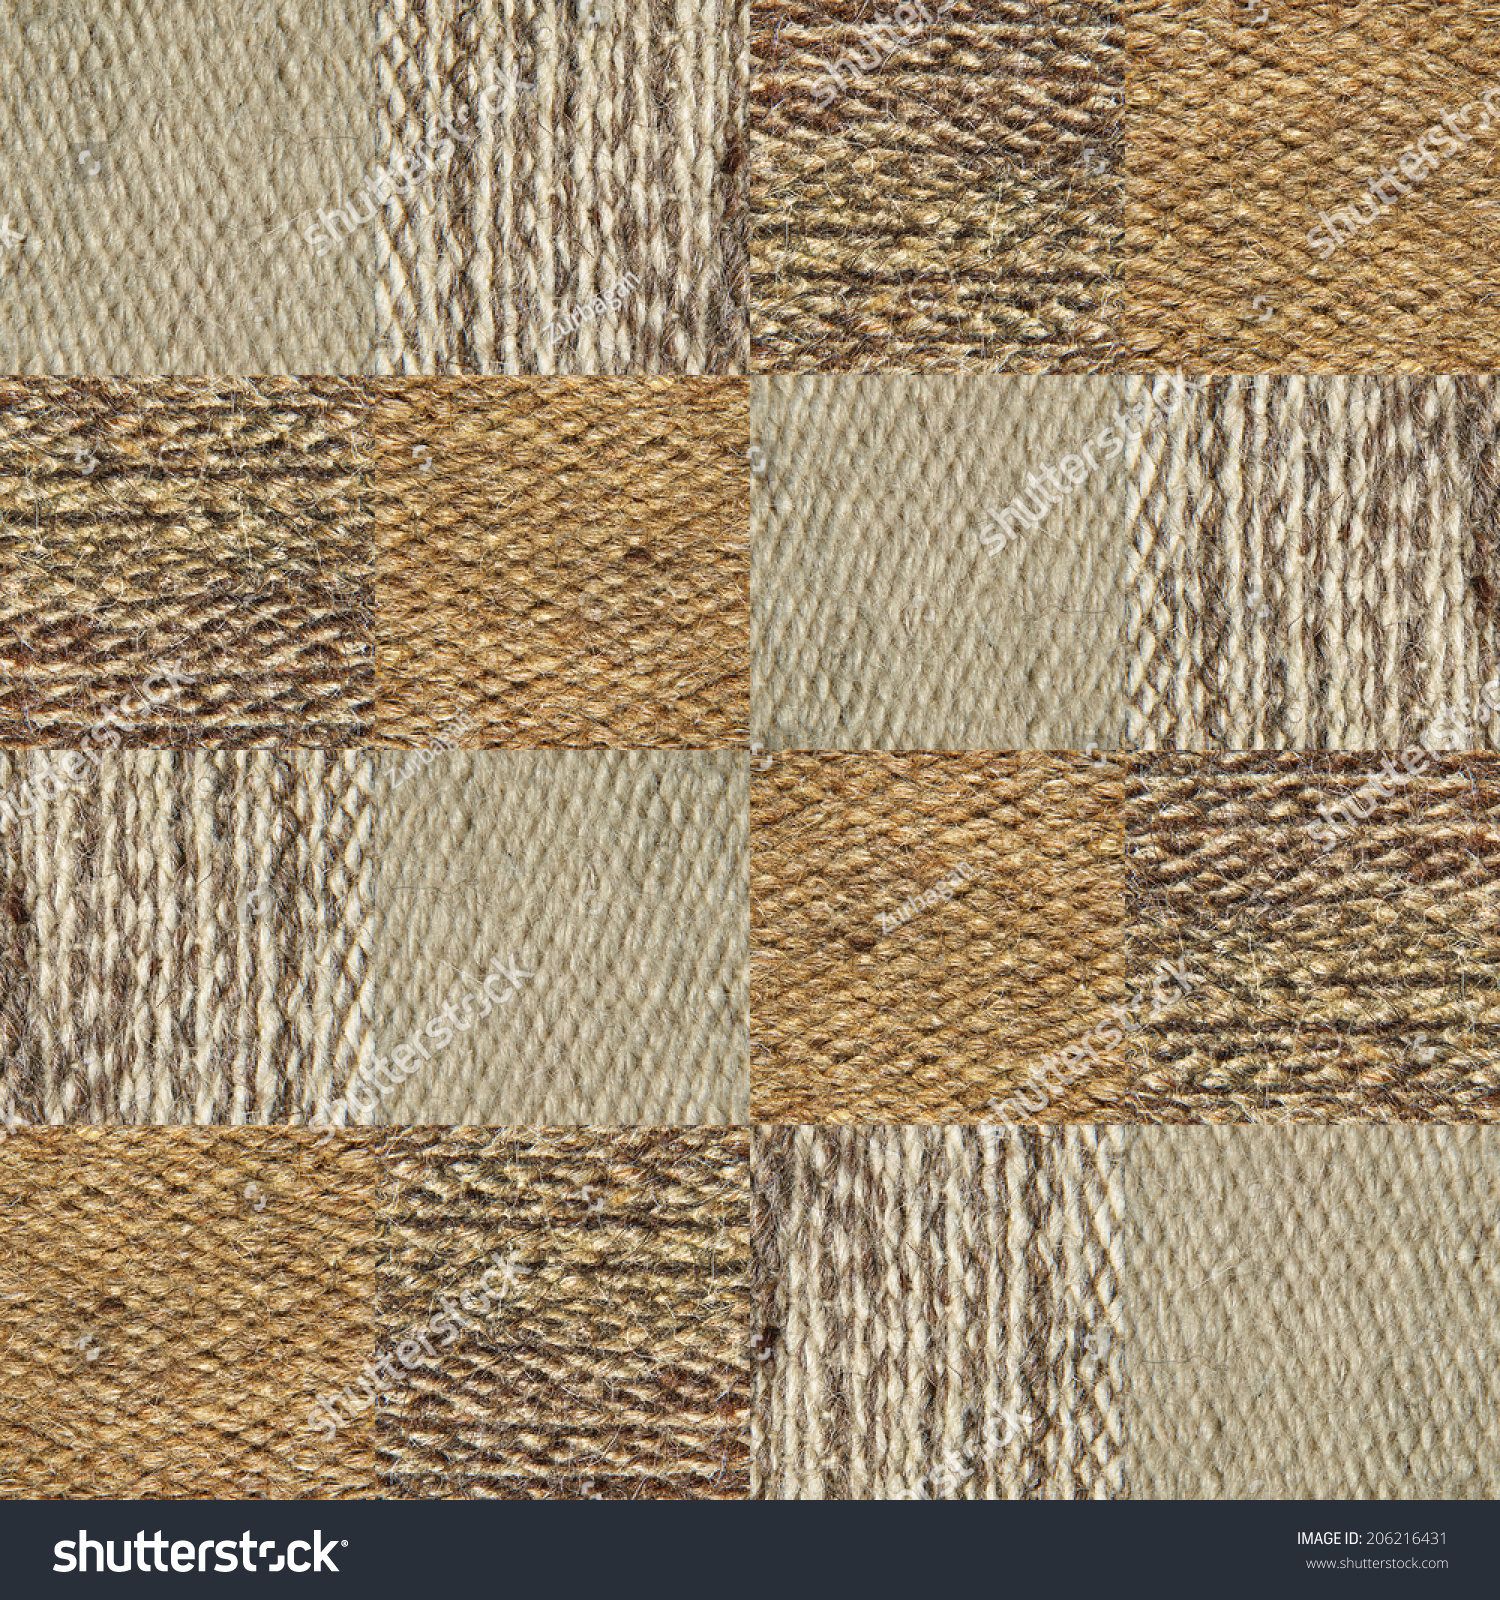 Royalty-free Camel wool fabric texture pattern… #206216431 Stock ... for Fabric Texture Pattern Hd  58lpg